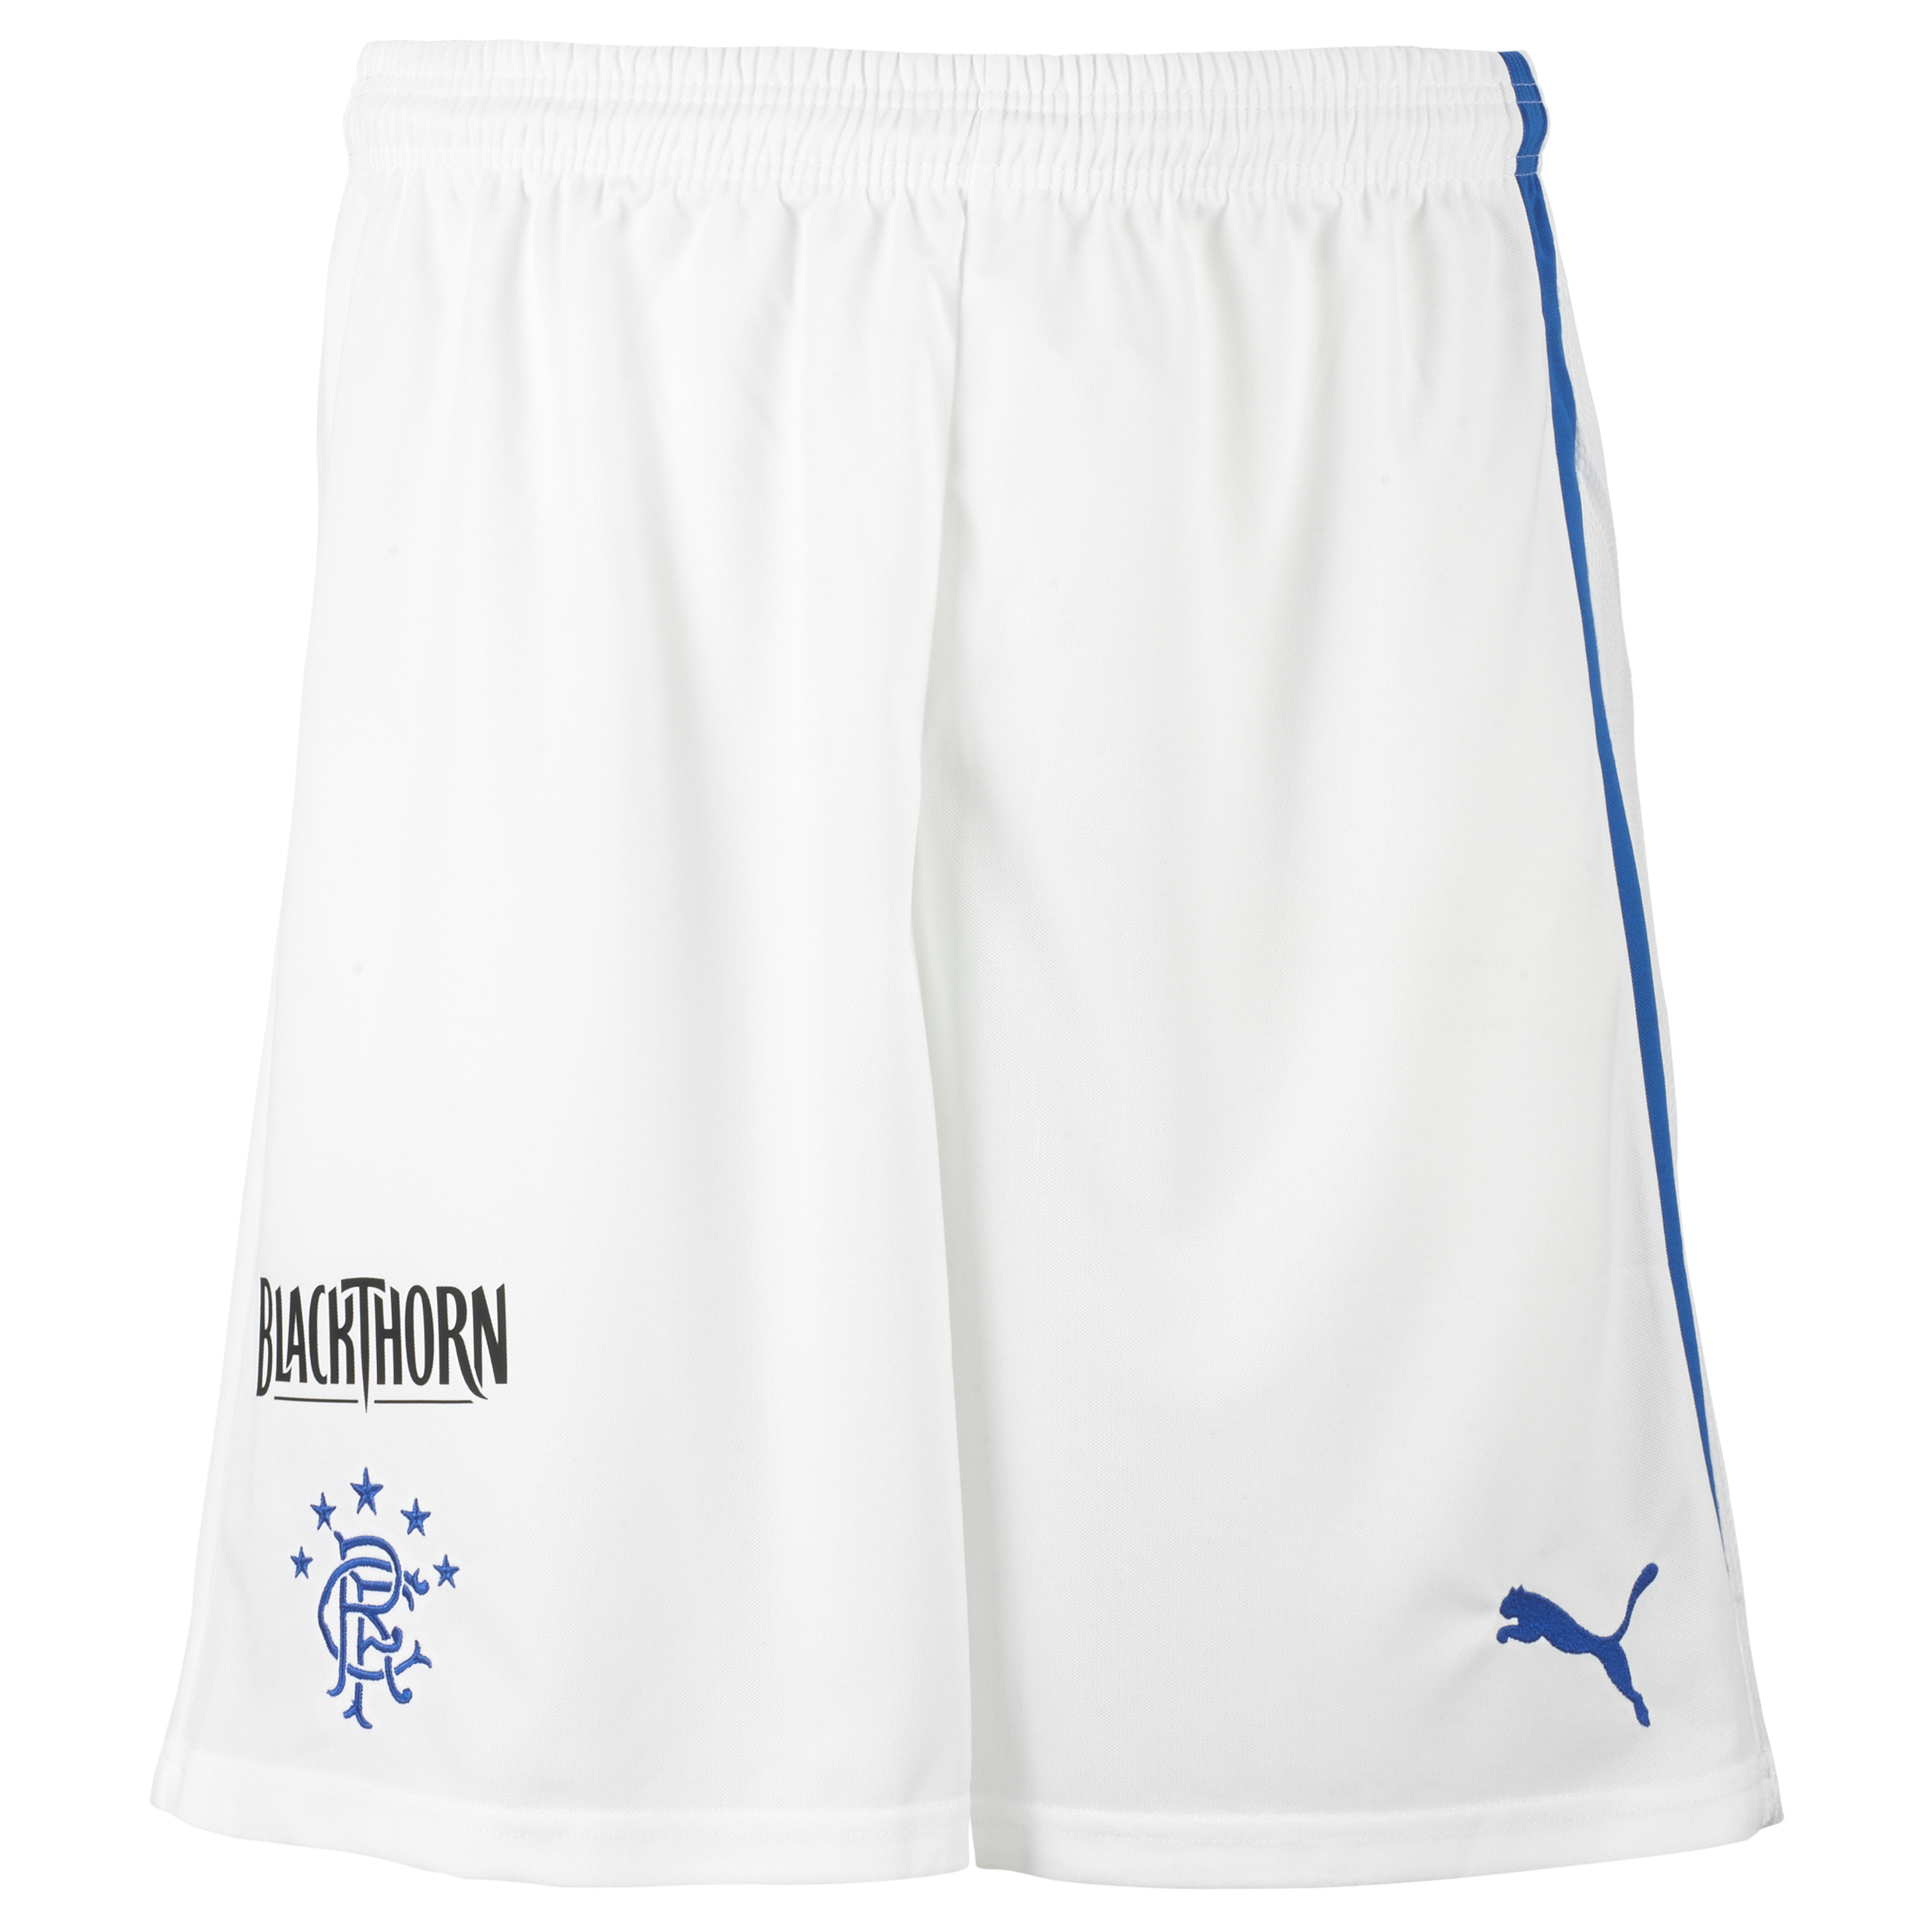 Glasgow Rangers Home Shorts 2013/14